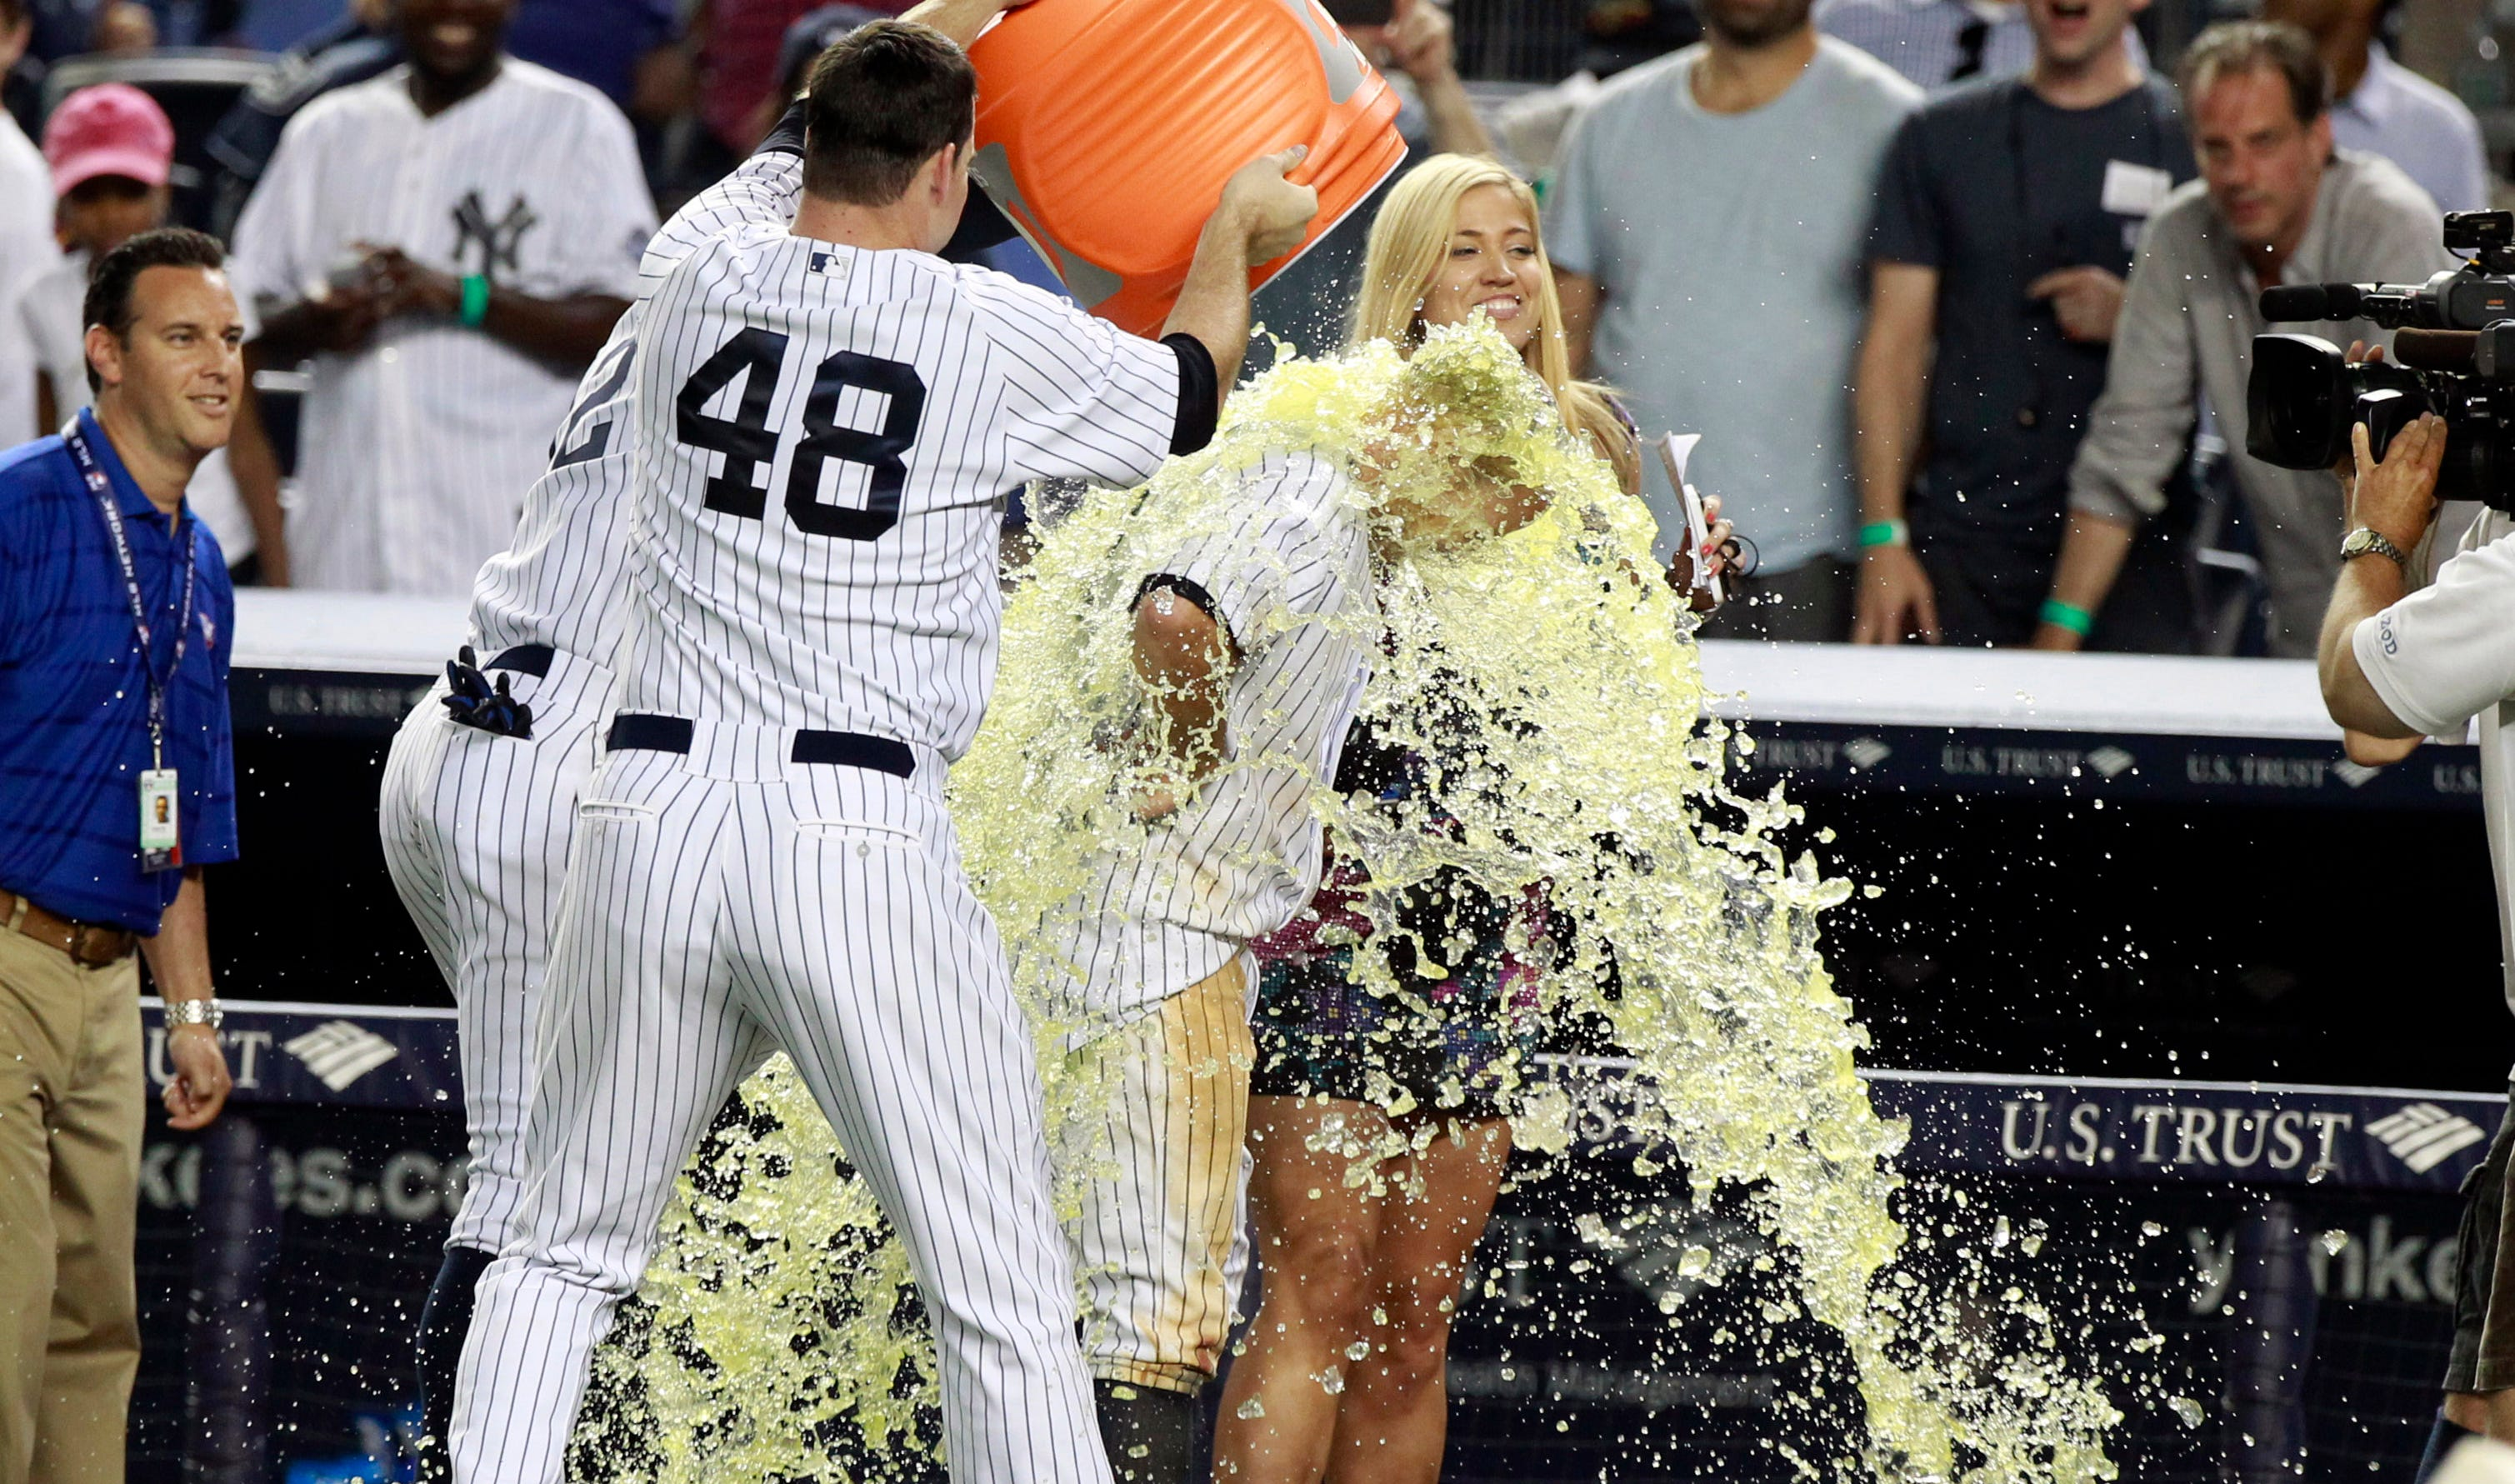 Aug.  9: Yankees relief pitcher Boone Logan  throws the Gatorade jug over center fielder Brett Gardner after his game-winning hit against the Tigers.